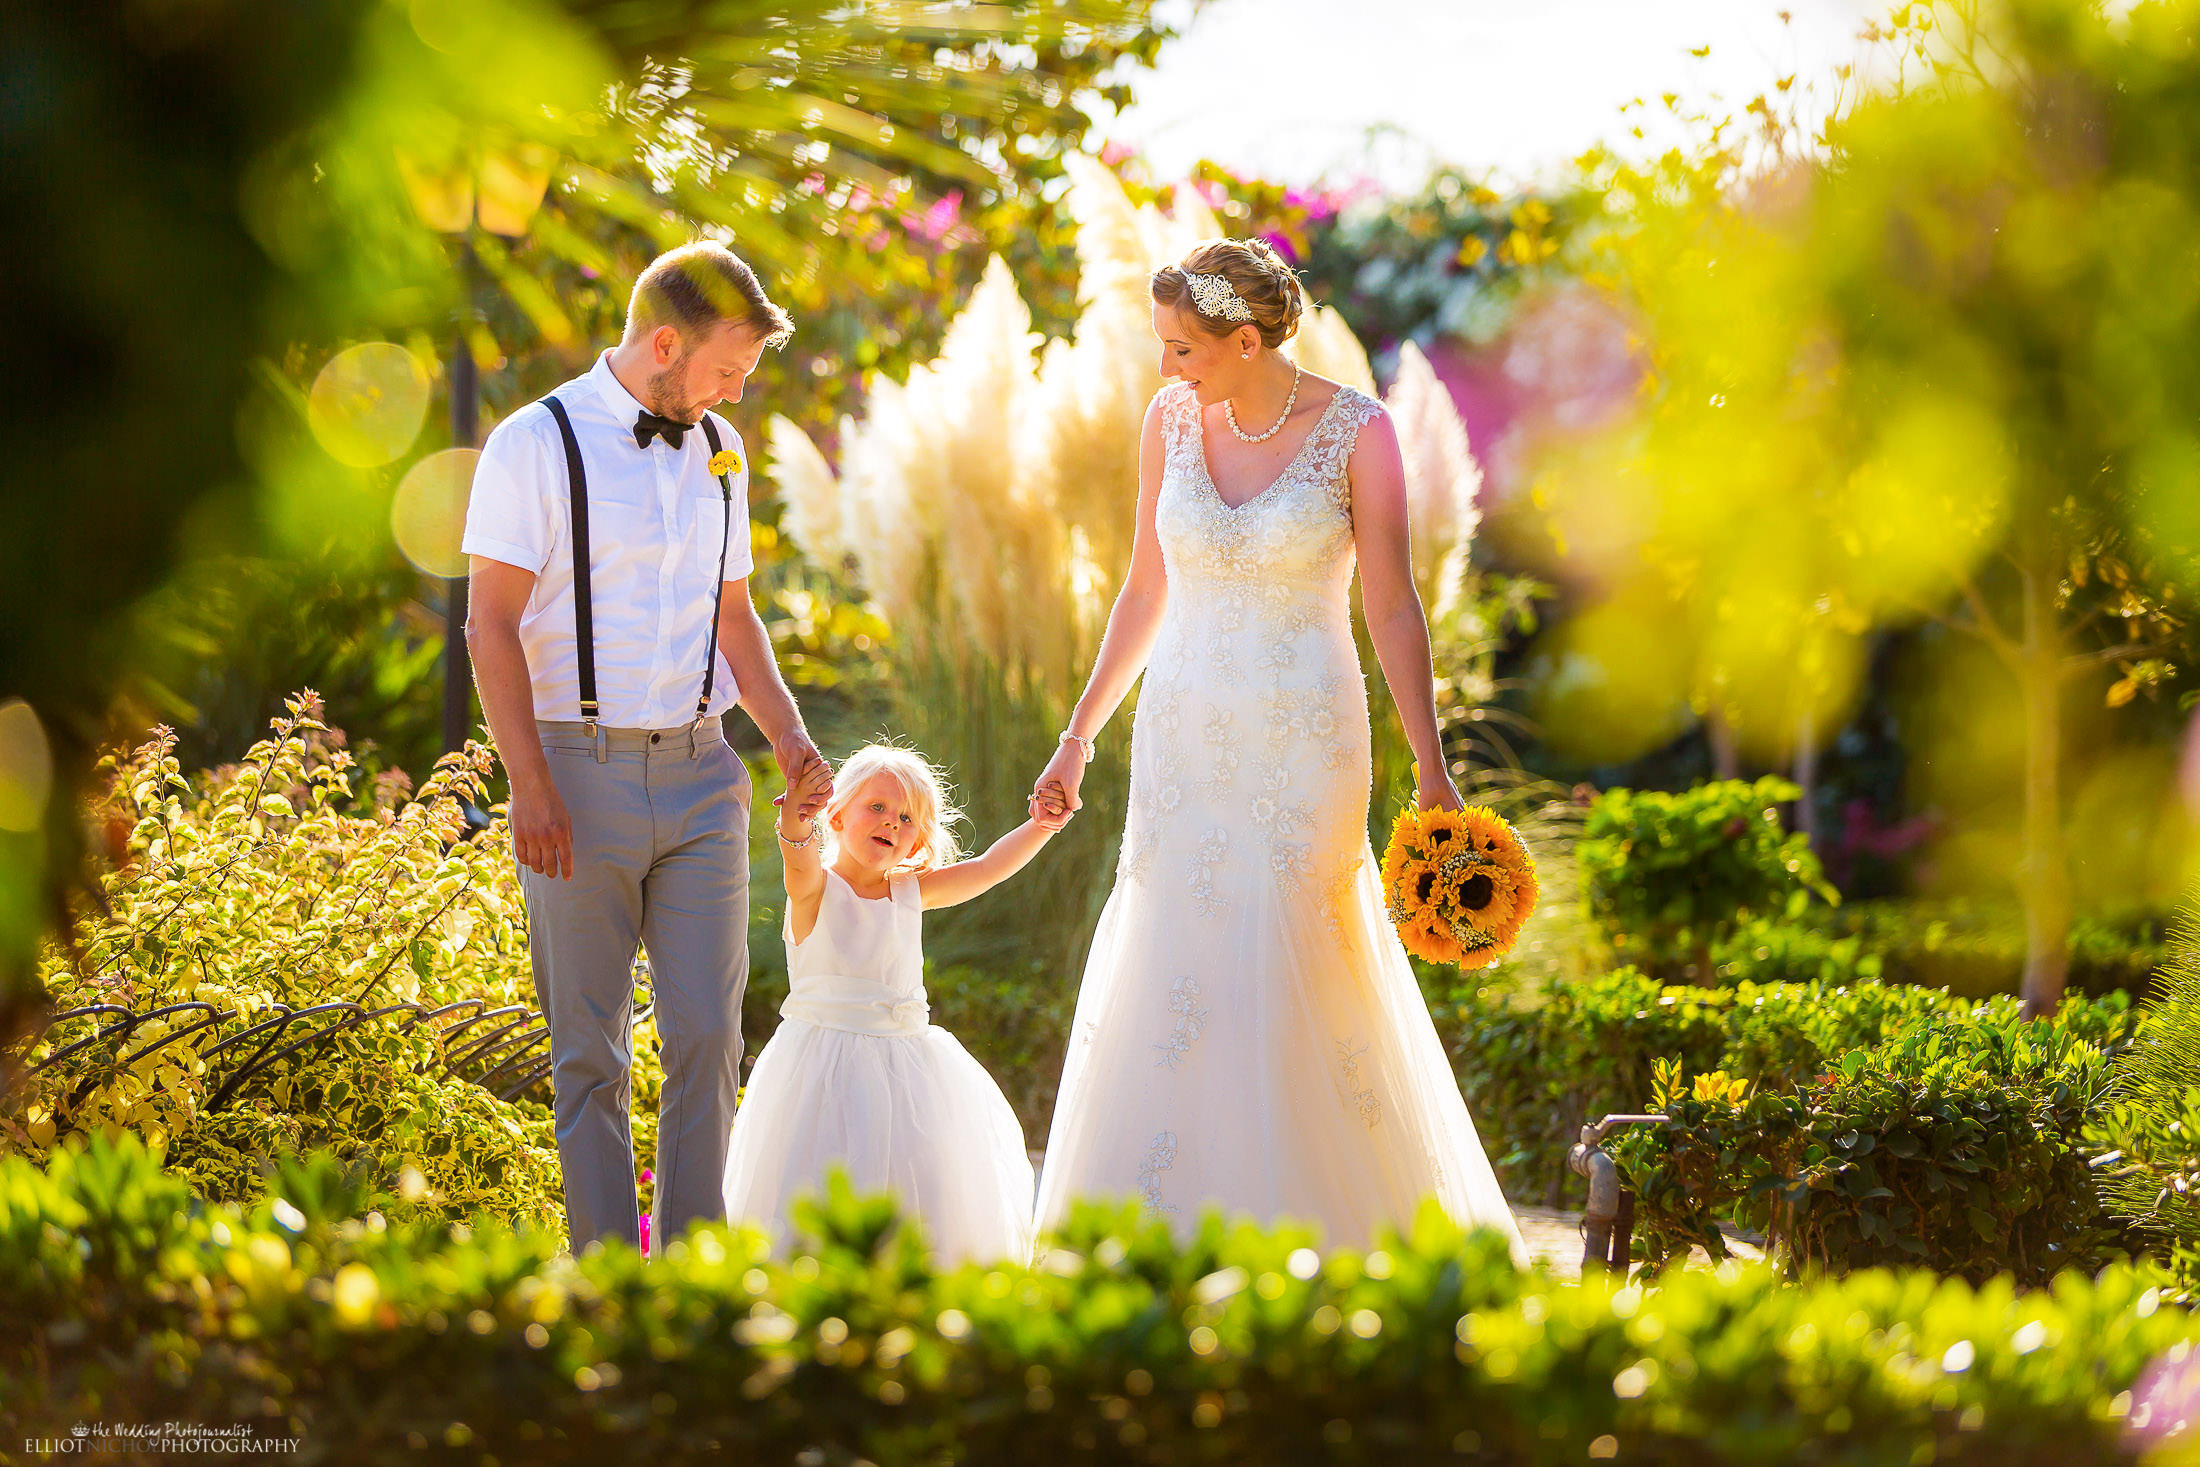 Newlywed couple take some time with their daughter in the gardens of their wedding venue. Photo by Newcastle based wedding photojournalist Elliot Nichol photographing wedding both in the UK and abroad.